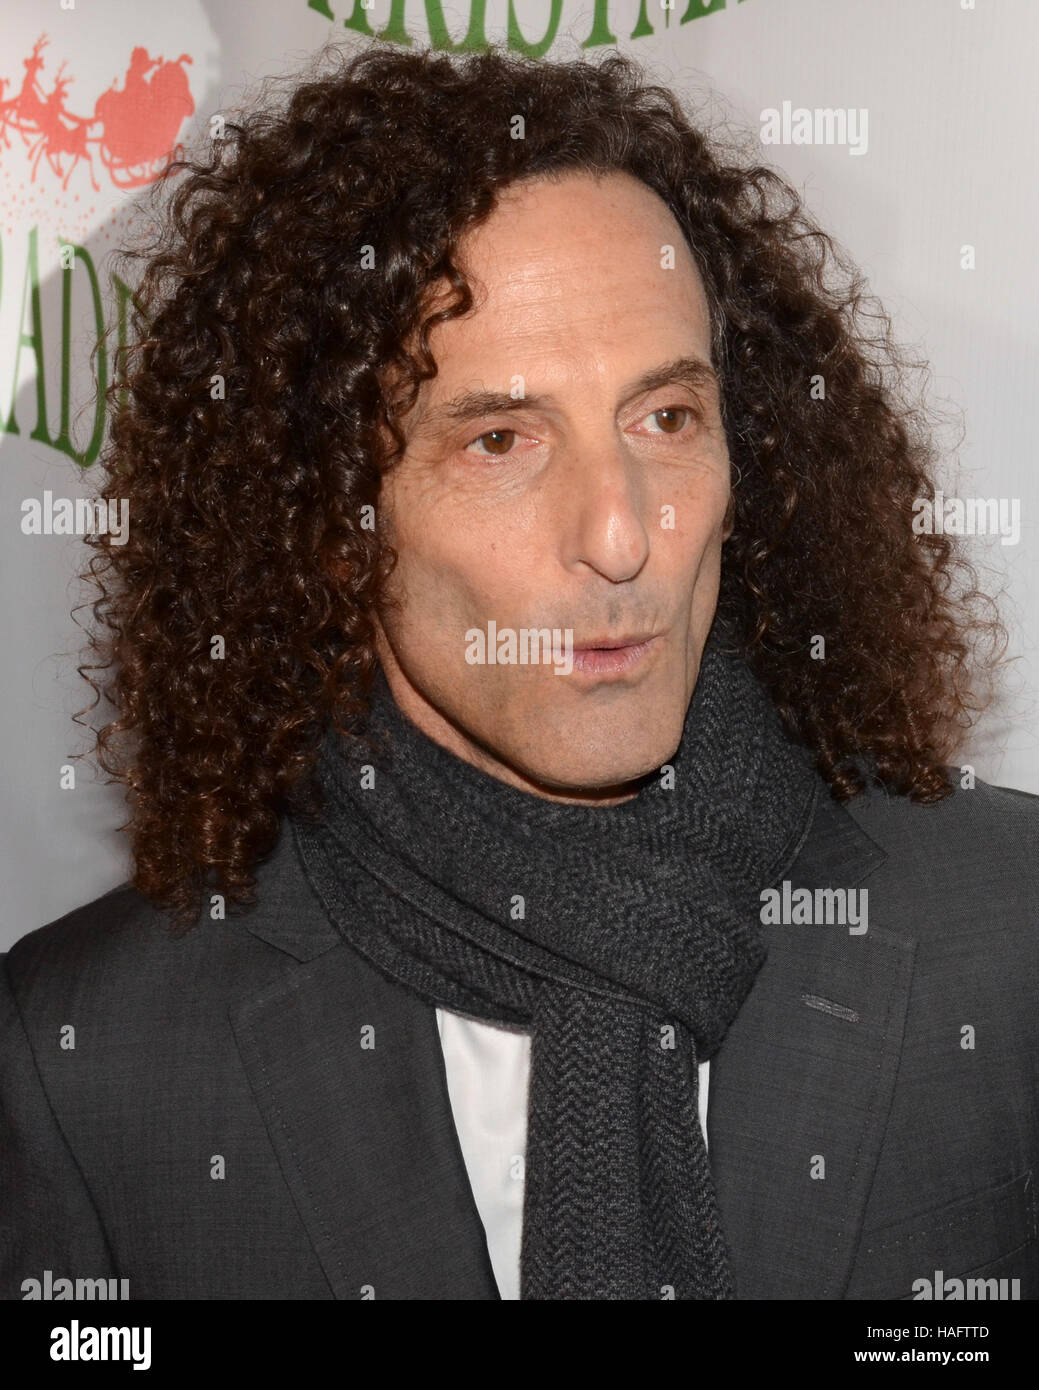 Kenny G Stock Photos & Kenny G Stock Images - Alamy